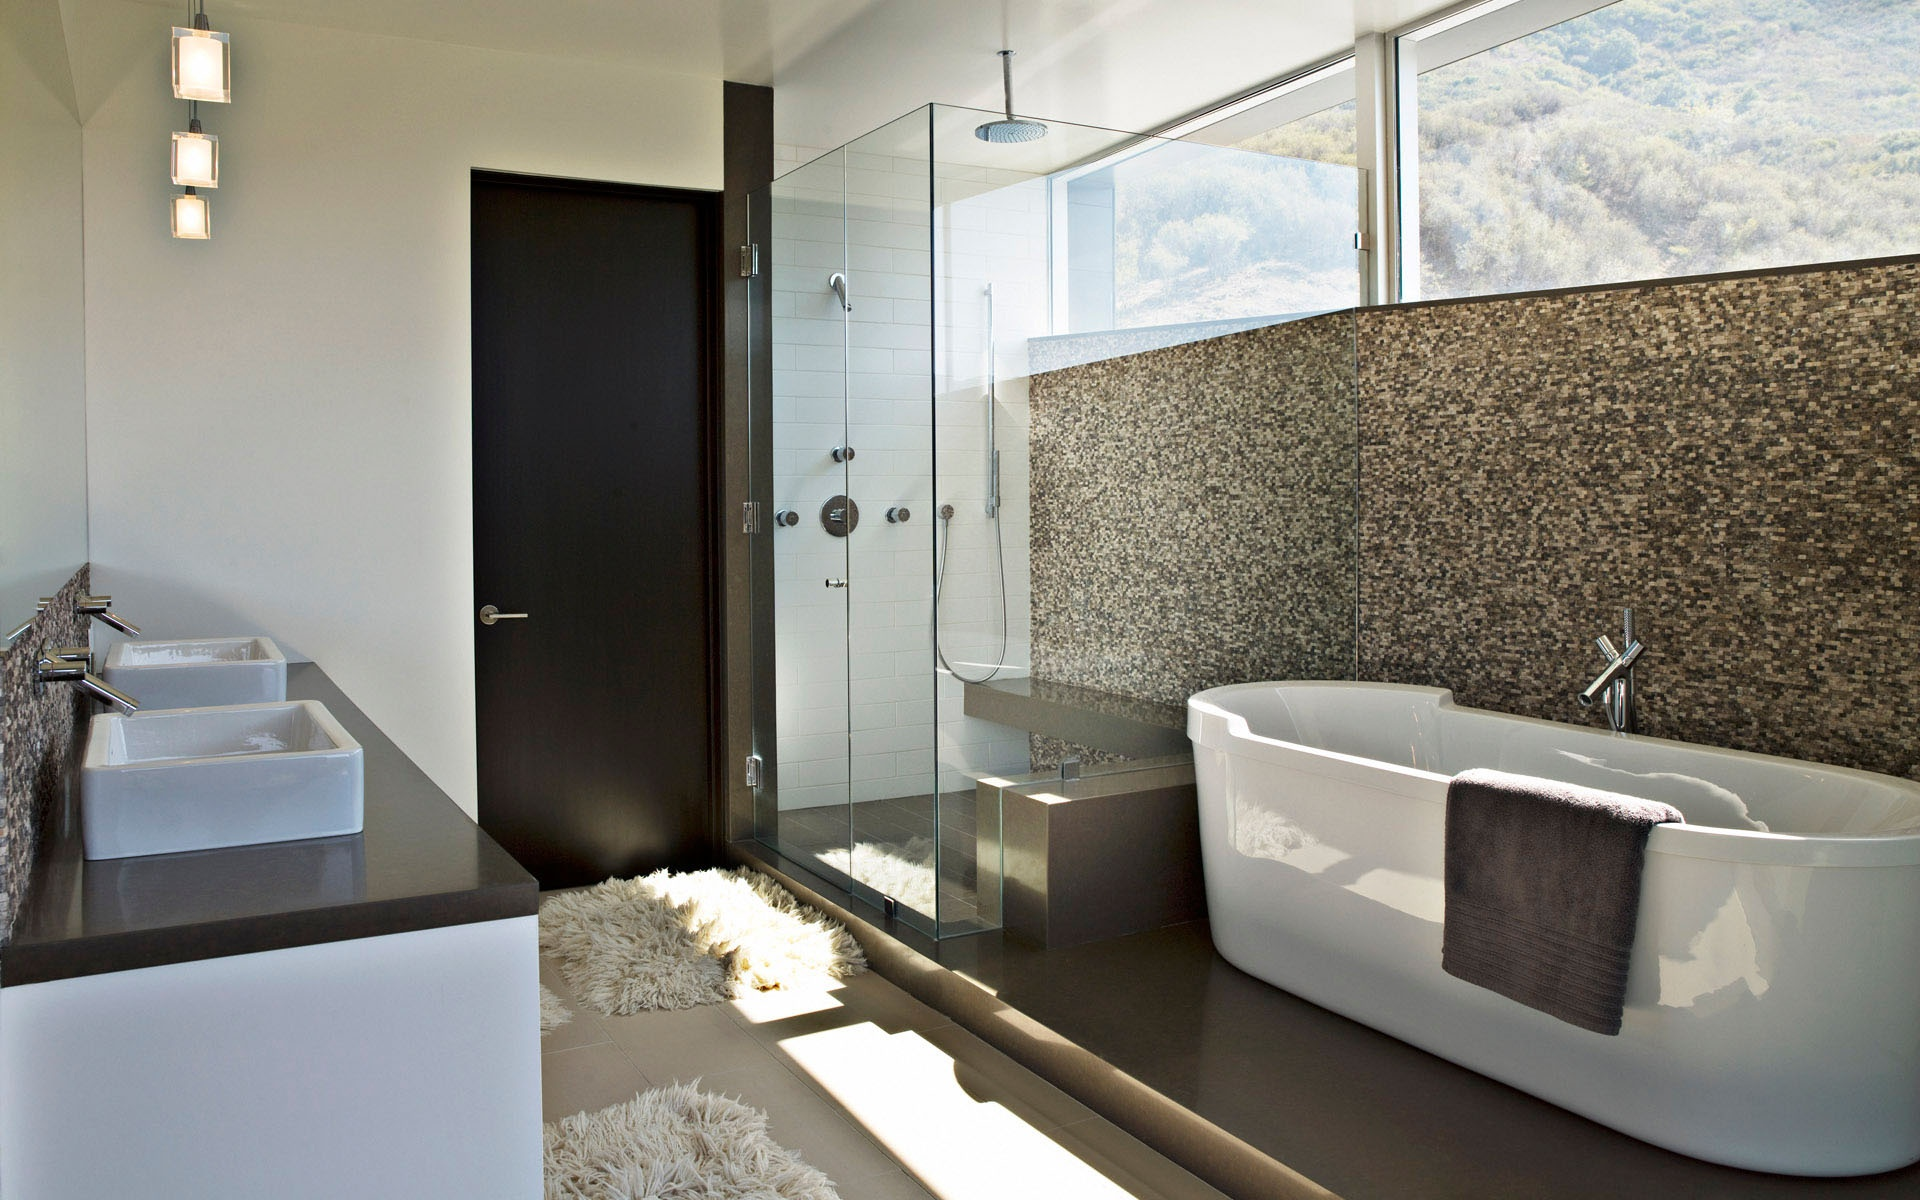 bathroom design bath design 1920x1200 Bathroom Ideas Grey Floor 1920x1200